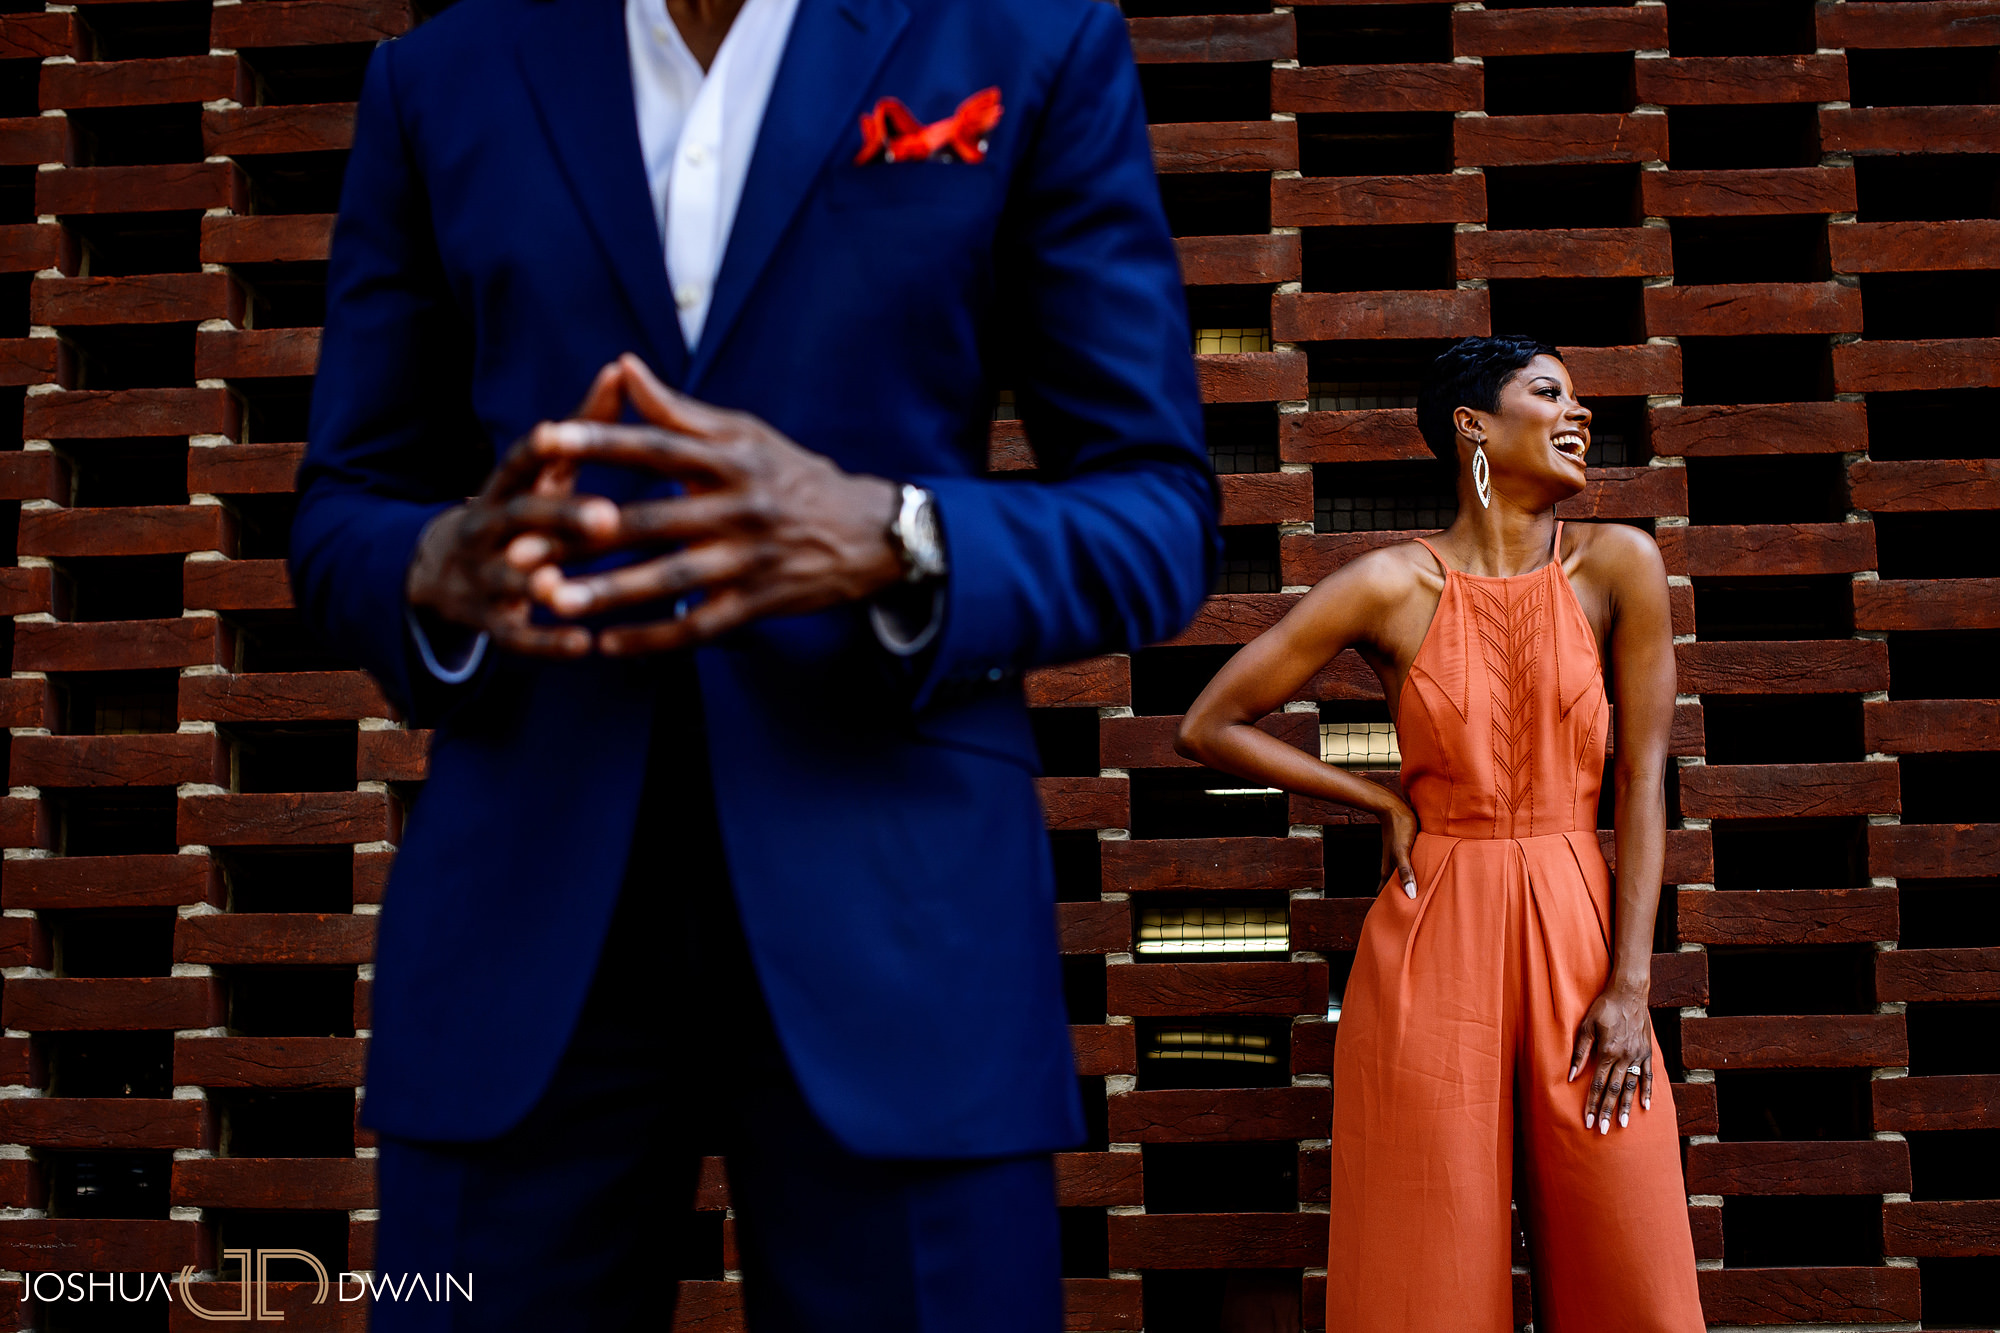 nicole-greg-014-old-alexandria-engagement-session-joshua-dwain